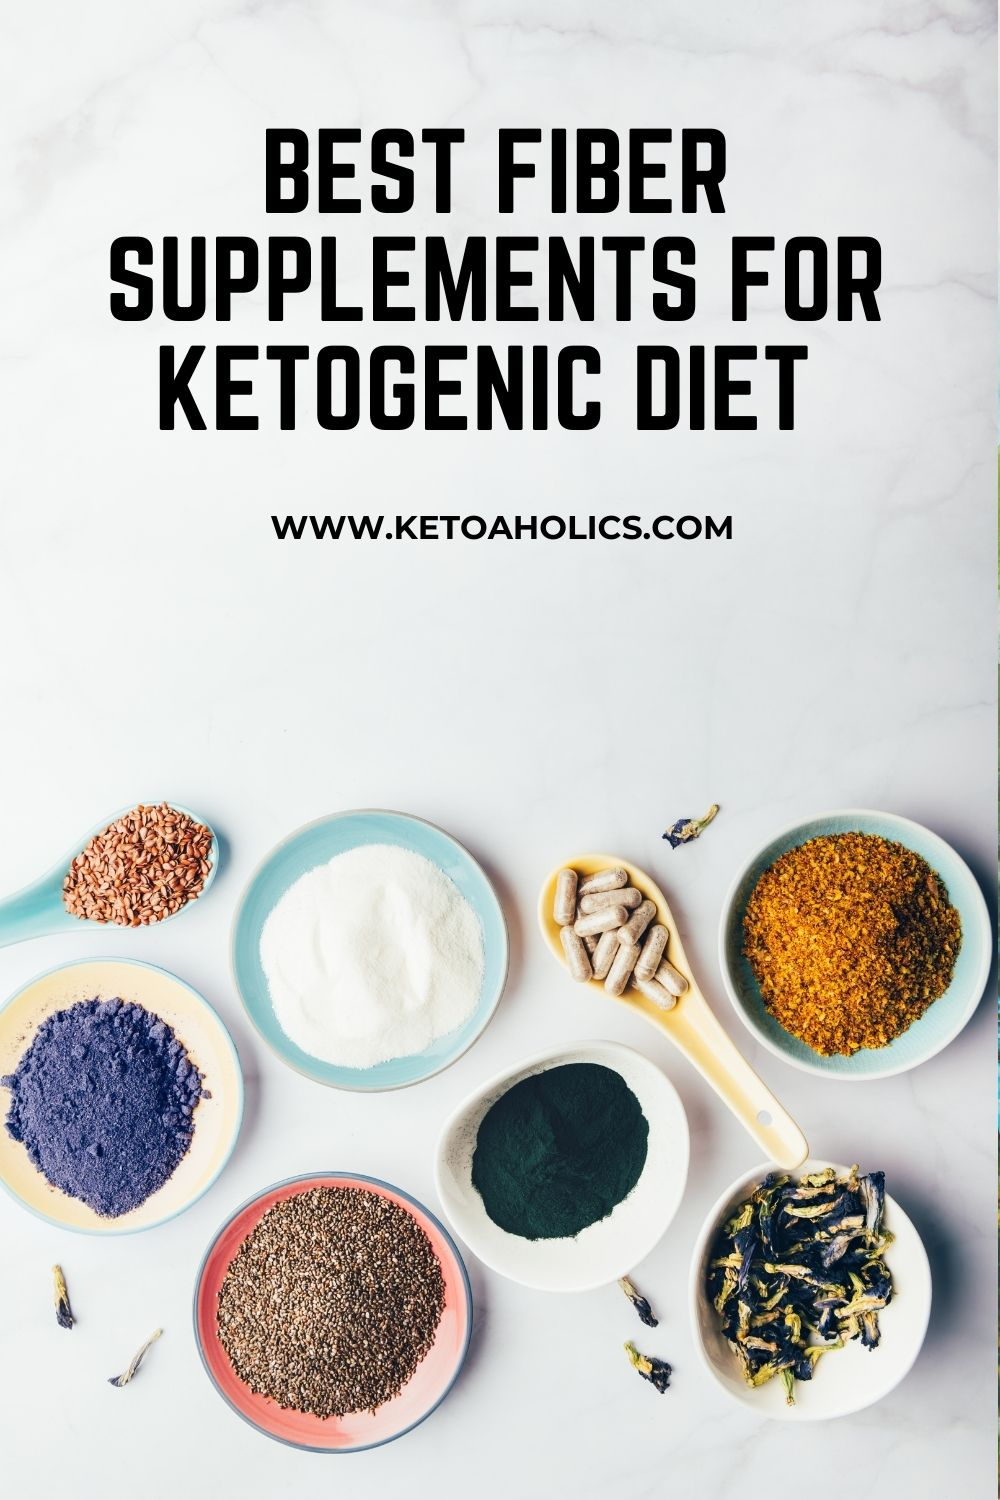 Best Fiber Supplements for Ketogenic Diet That Can Solve Your Digestive Issues